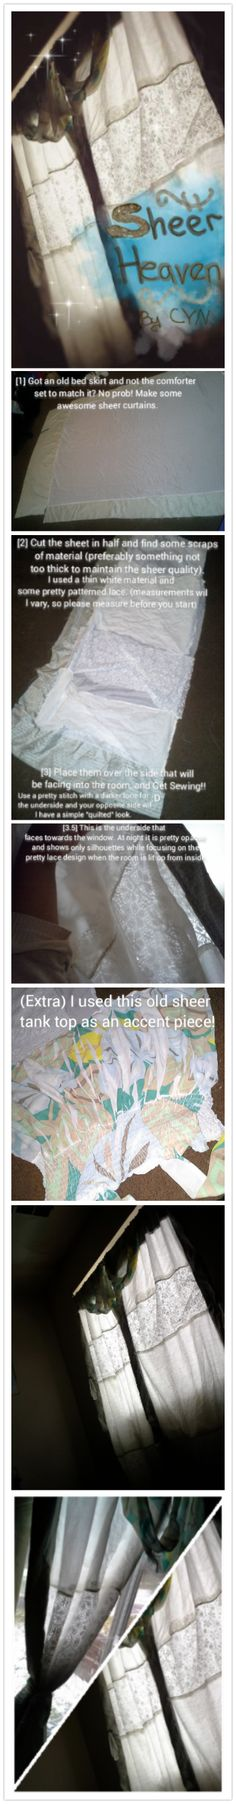 DIY: Sheer curtains project using an old bed skirt! Try it out, it's pretty and simple!  Perfect idea for crafty people with a very tight budget trying to dress a new house or apartment! #decorating #curtains #homeimprovement #lace #simple #apartment #house #Windows #sheer #DIY #projects #creative #recycling